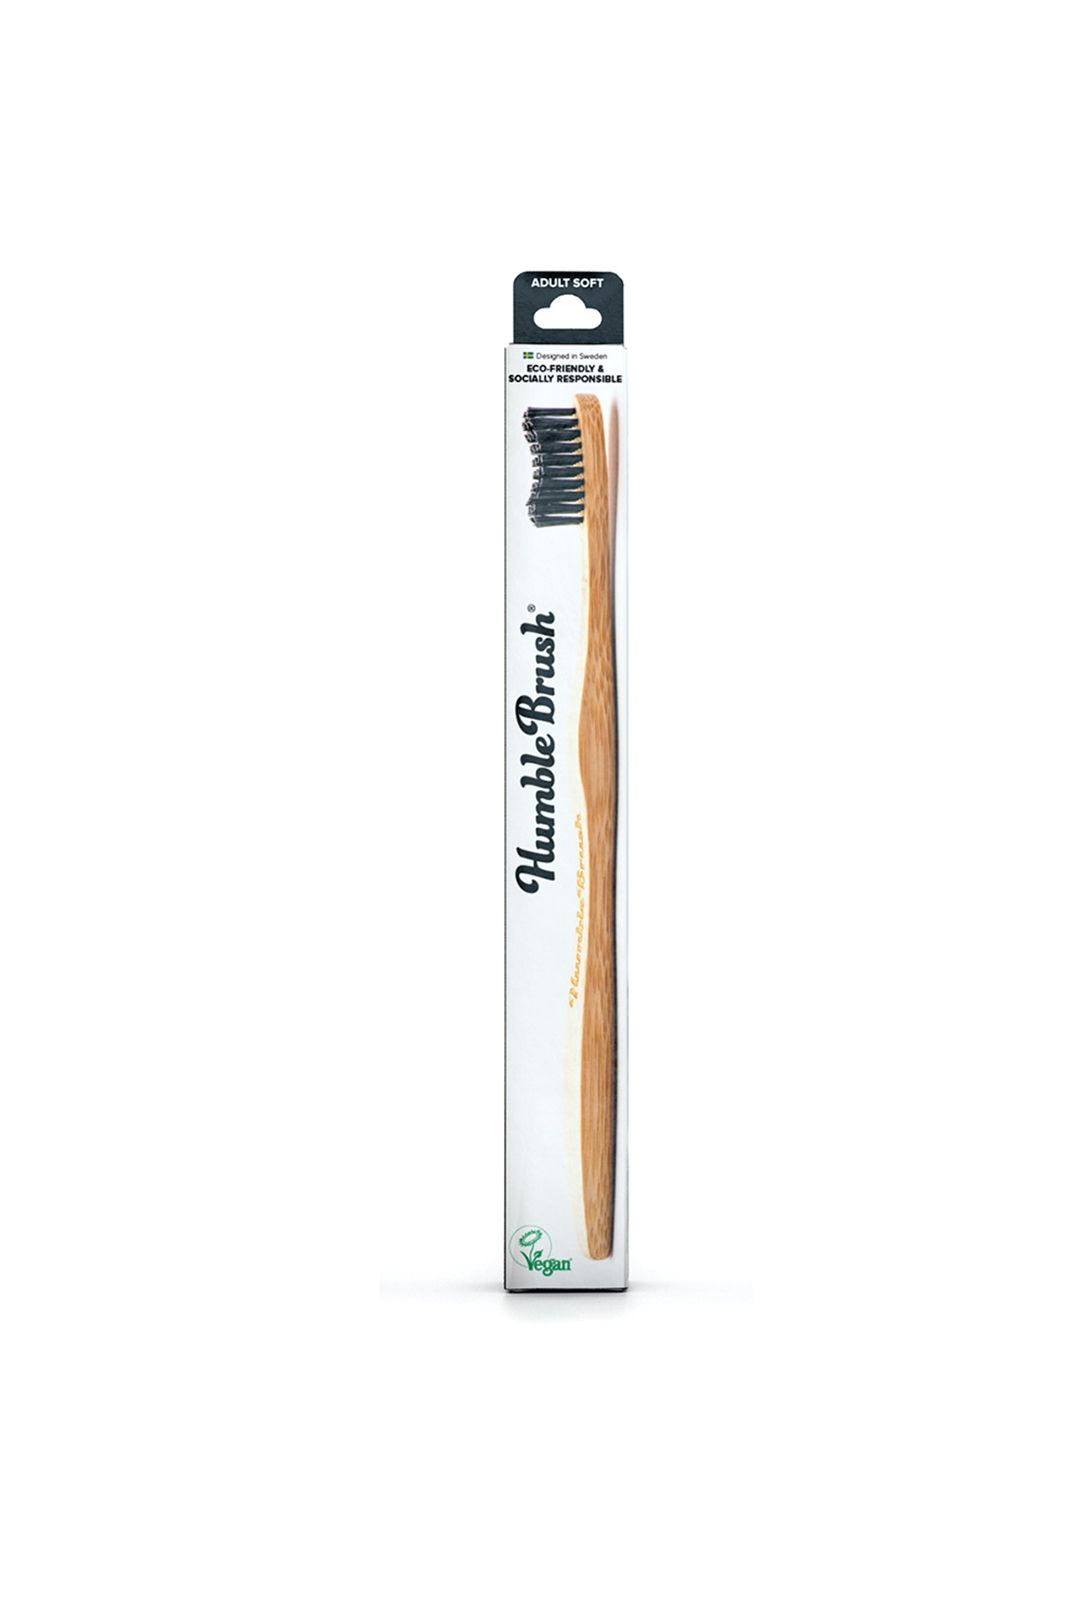 the-humble-co-toothbrush-bamboo-adult-soft-black